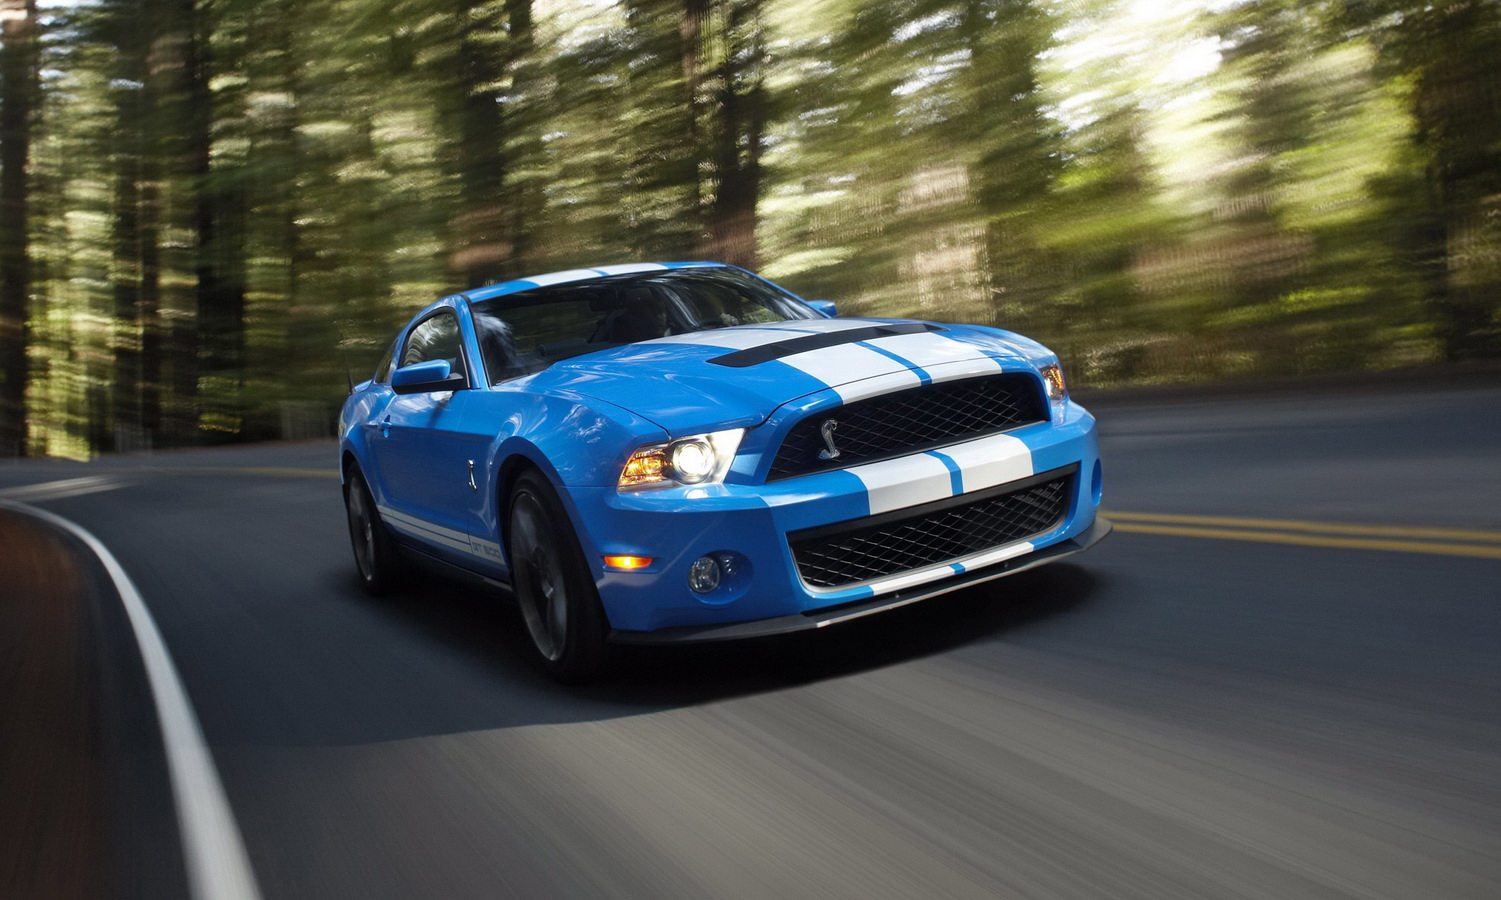 2010 Ford Shelby Gt500 #28